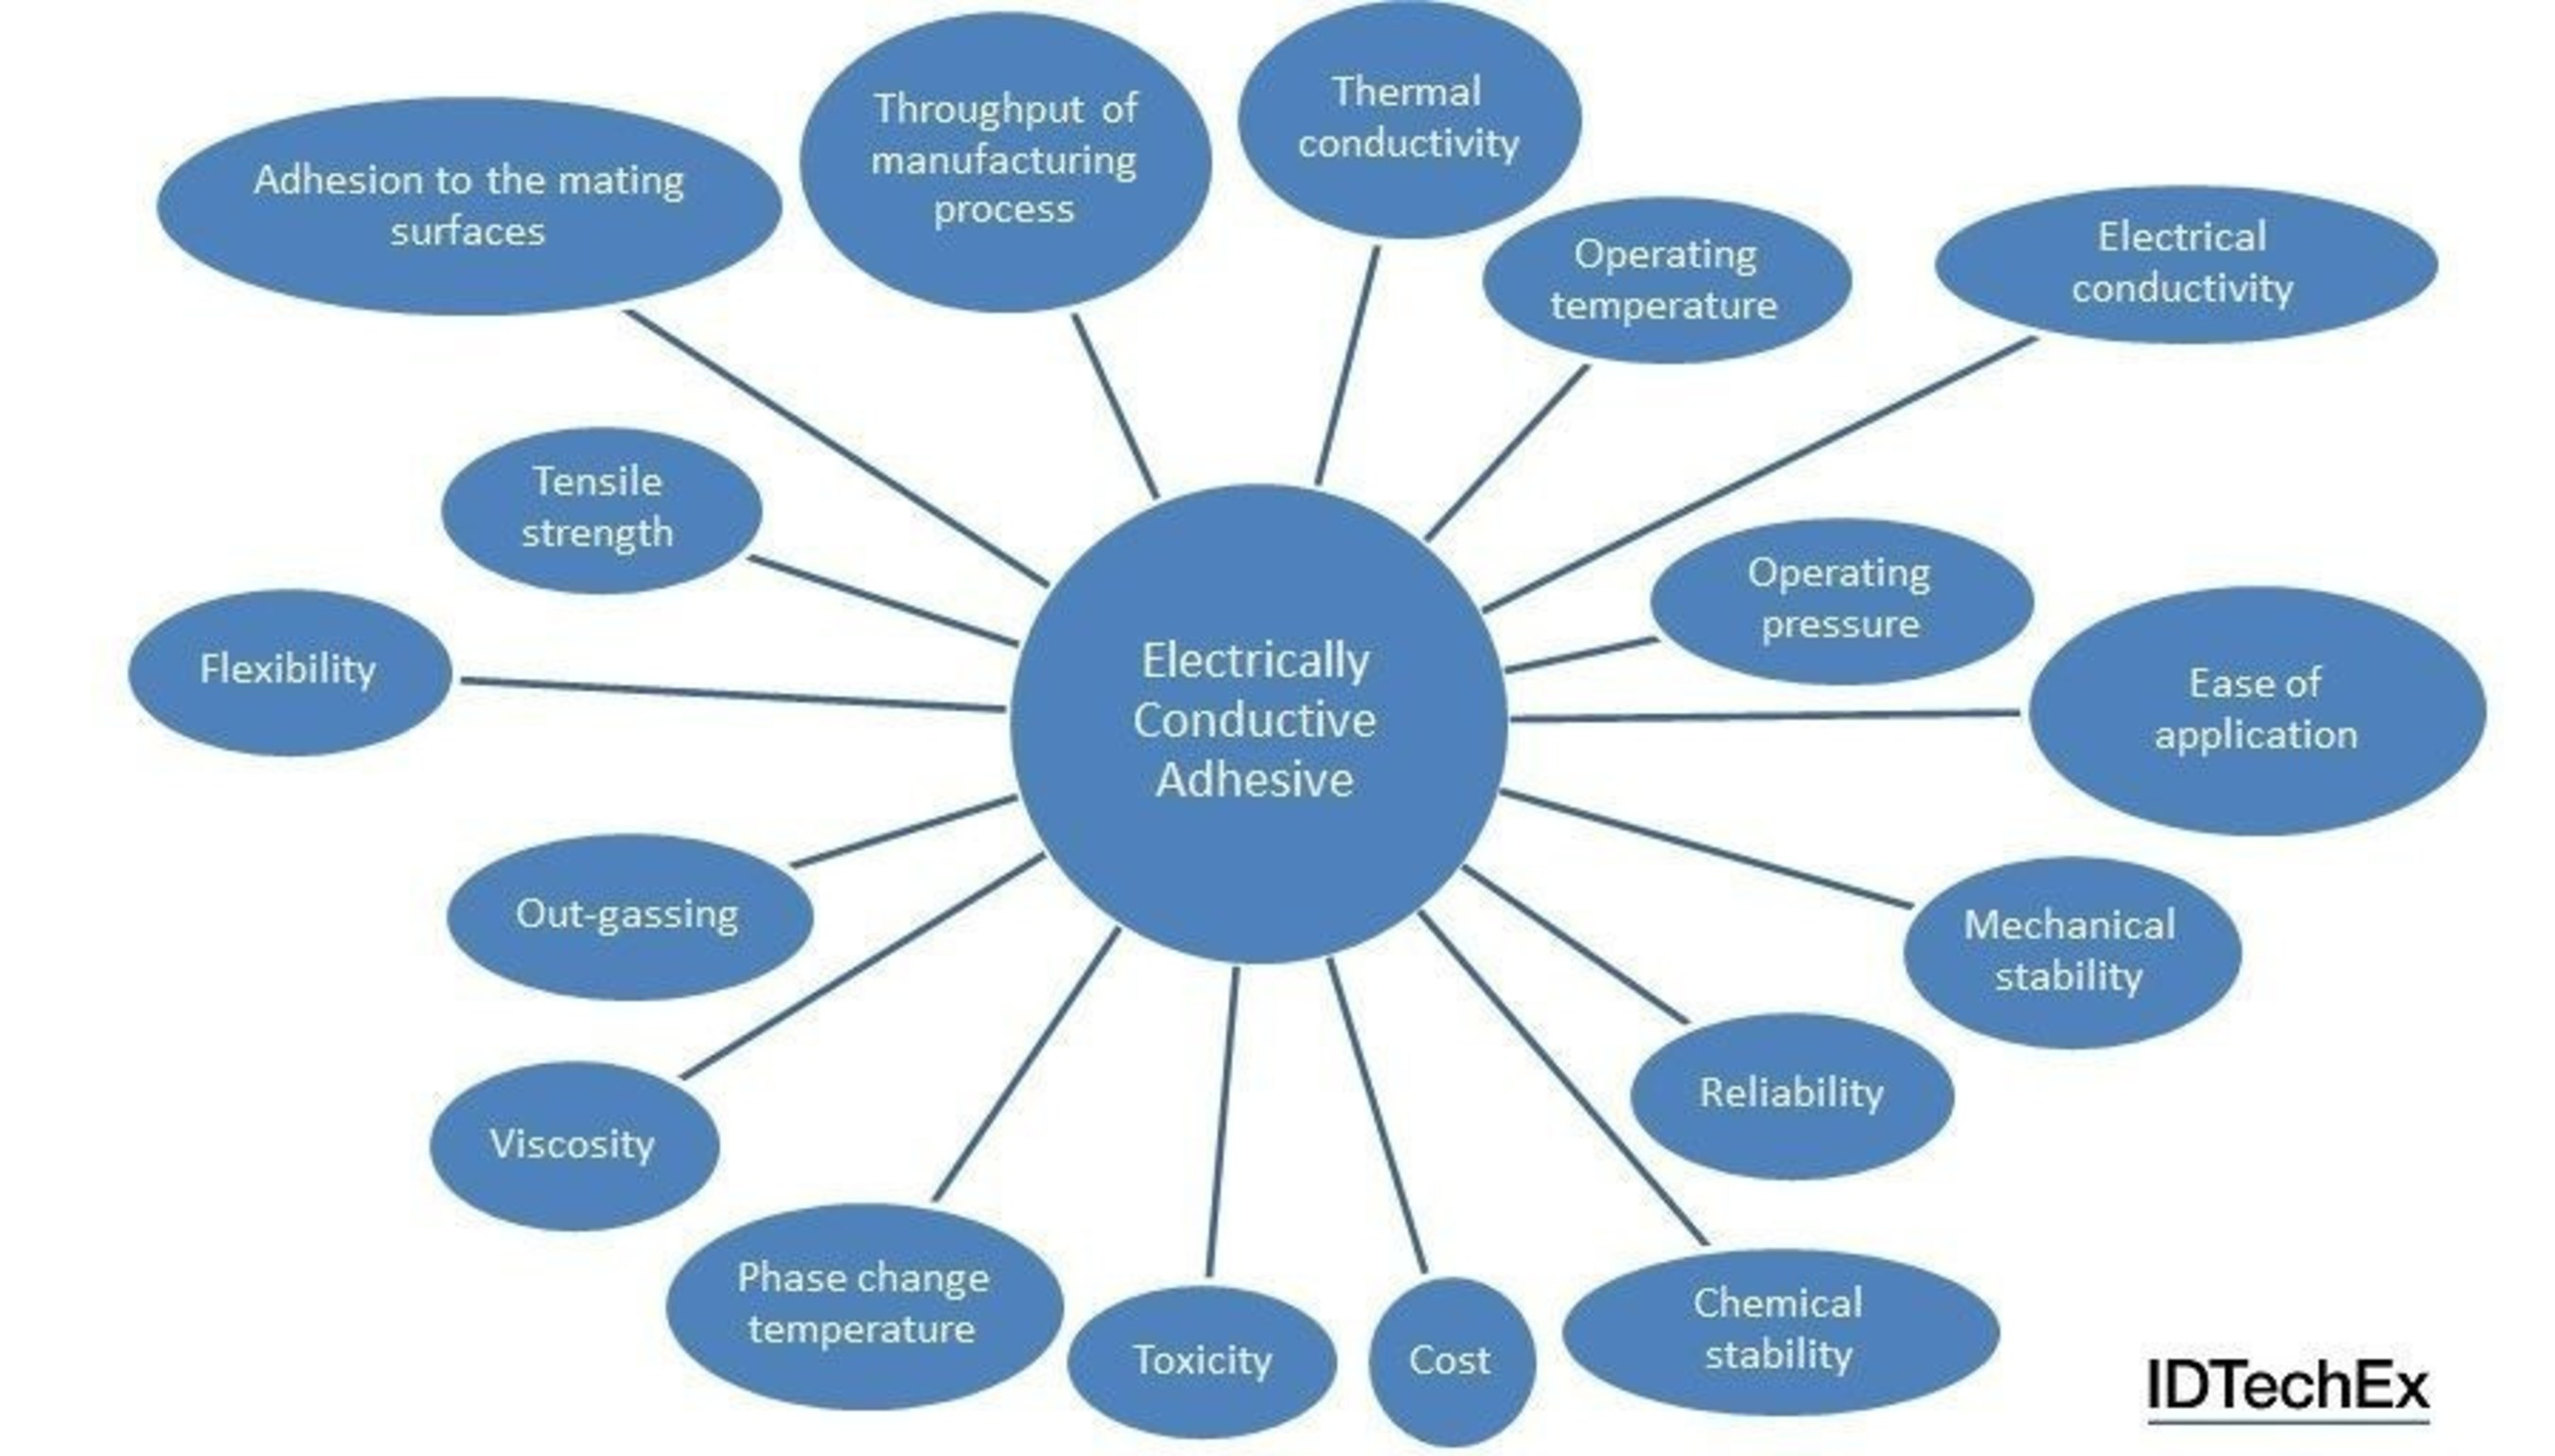 """Figure 1: Diagram showing some of the most important parameters to consider when choosing an electrically conductive adhesive. Source: IDTechEx Research report """"Electrically Conductive Adhesives 2016-2026"""" (www.IDTechEx.com/adhesives). (PRNewsFoto/IDTechEx Research)"""